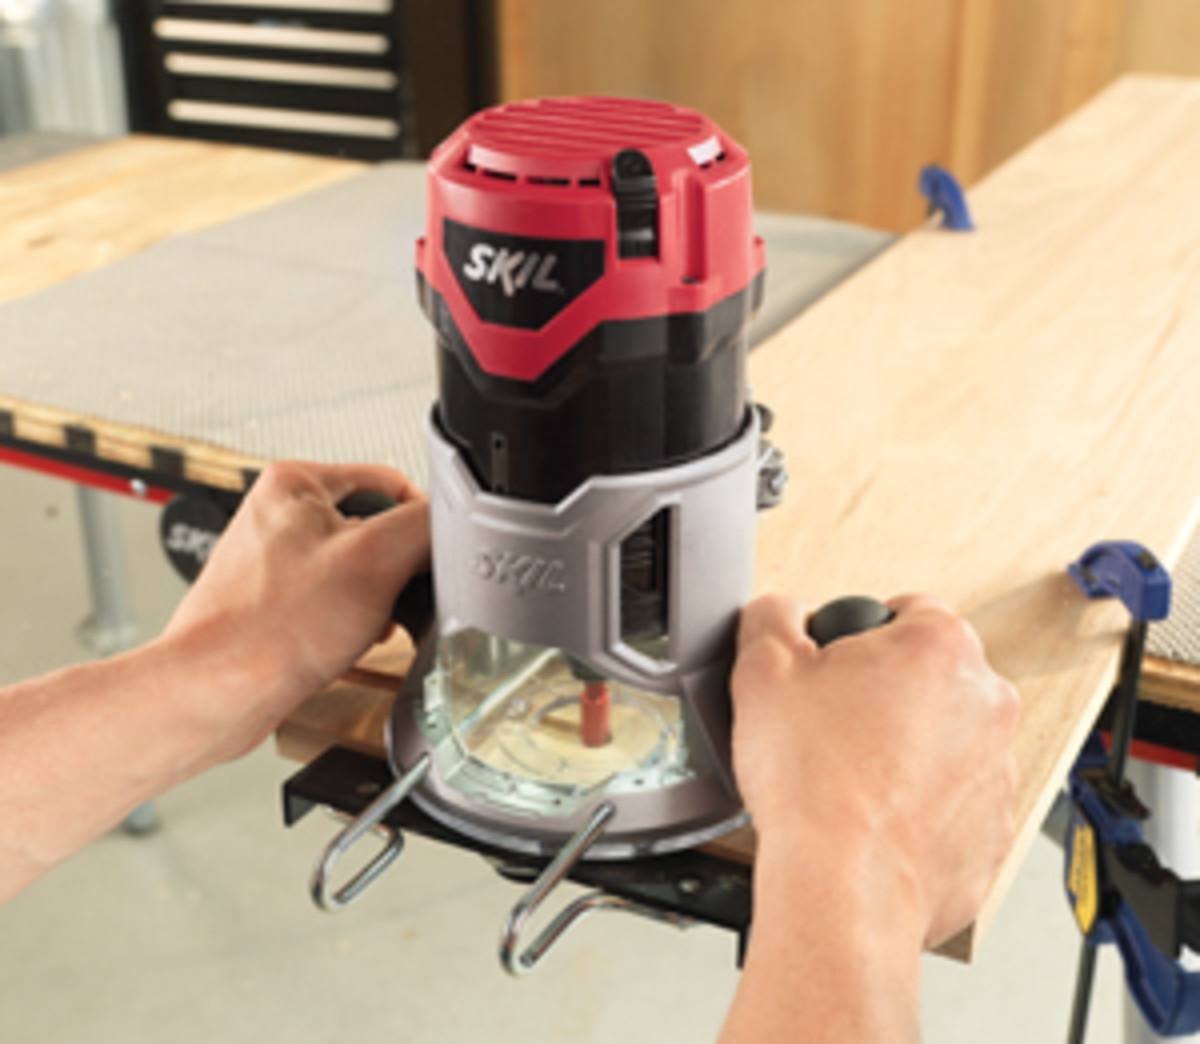 Skil Power Tools